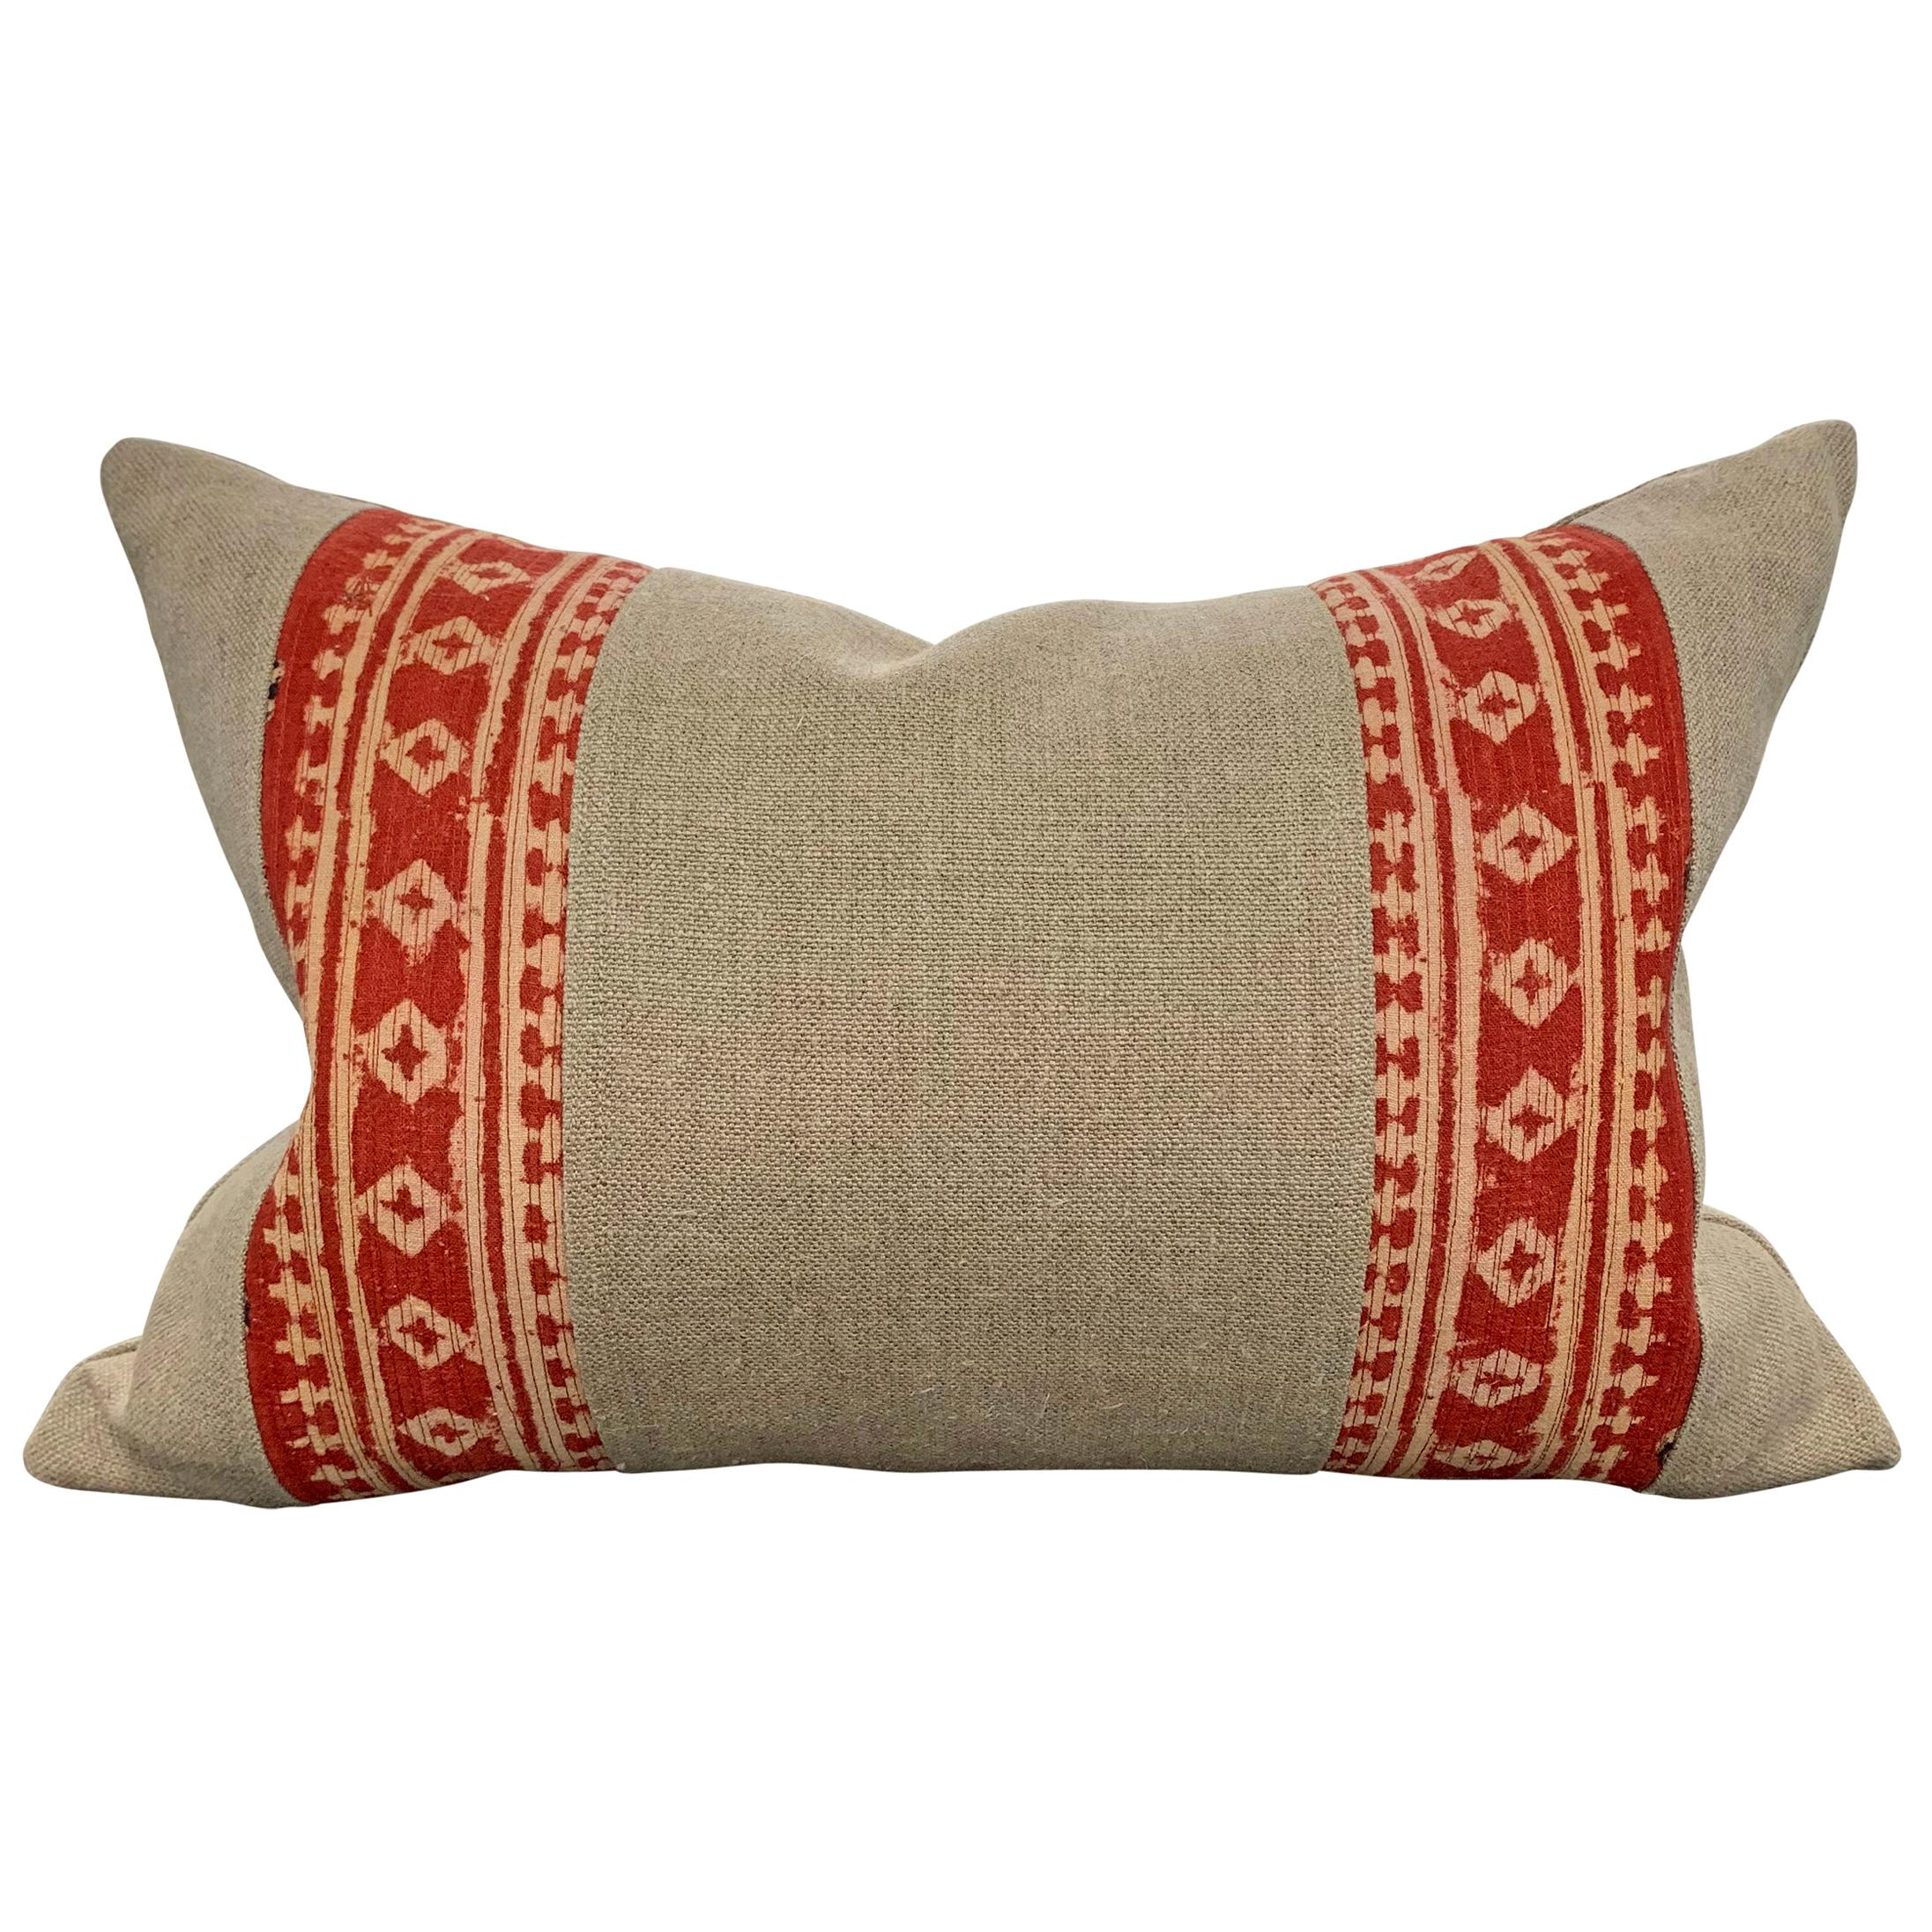 Antique and Vintage Pillows and Throws